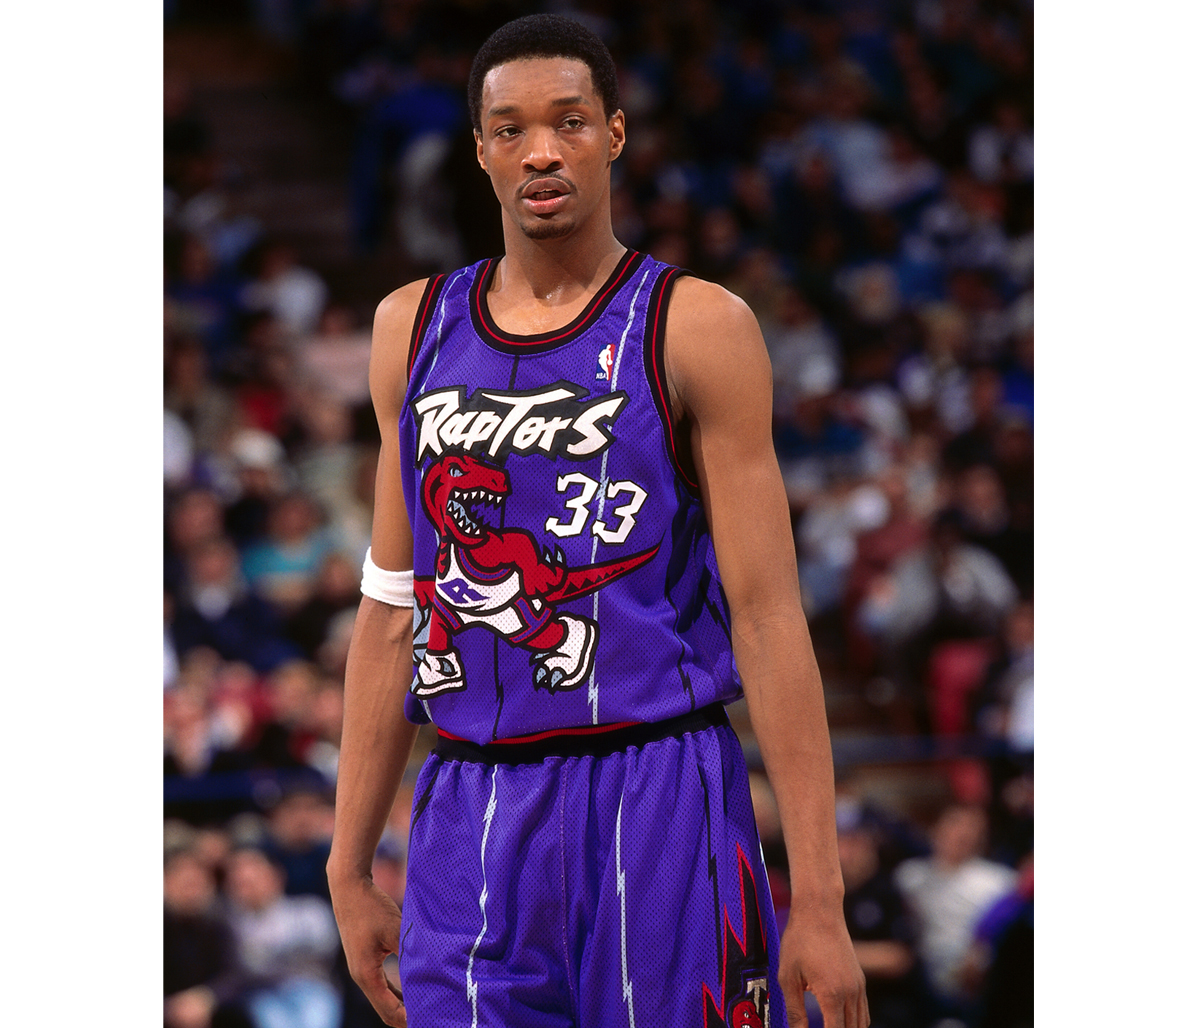 fcdef6dc896c The 10 Worst NBA Jerseys of All Time - Men s Journal